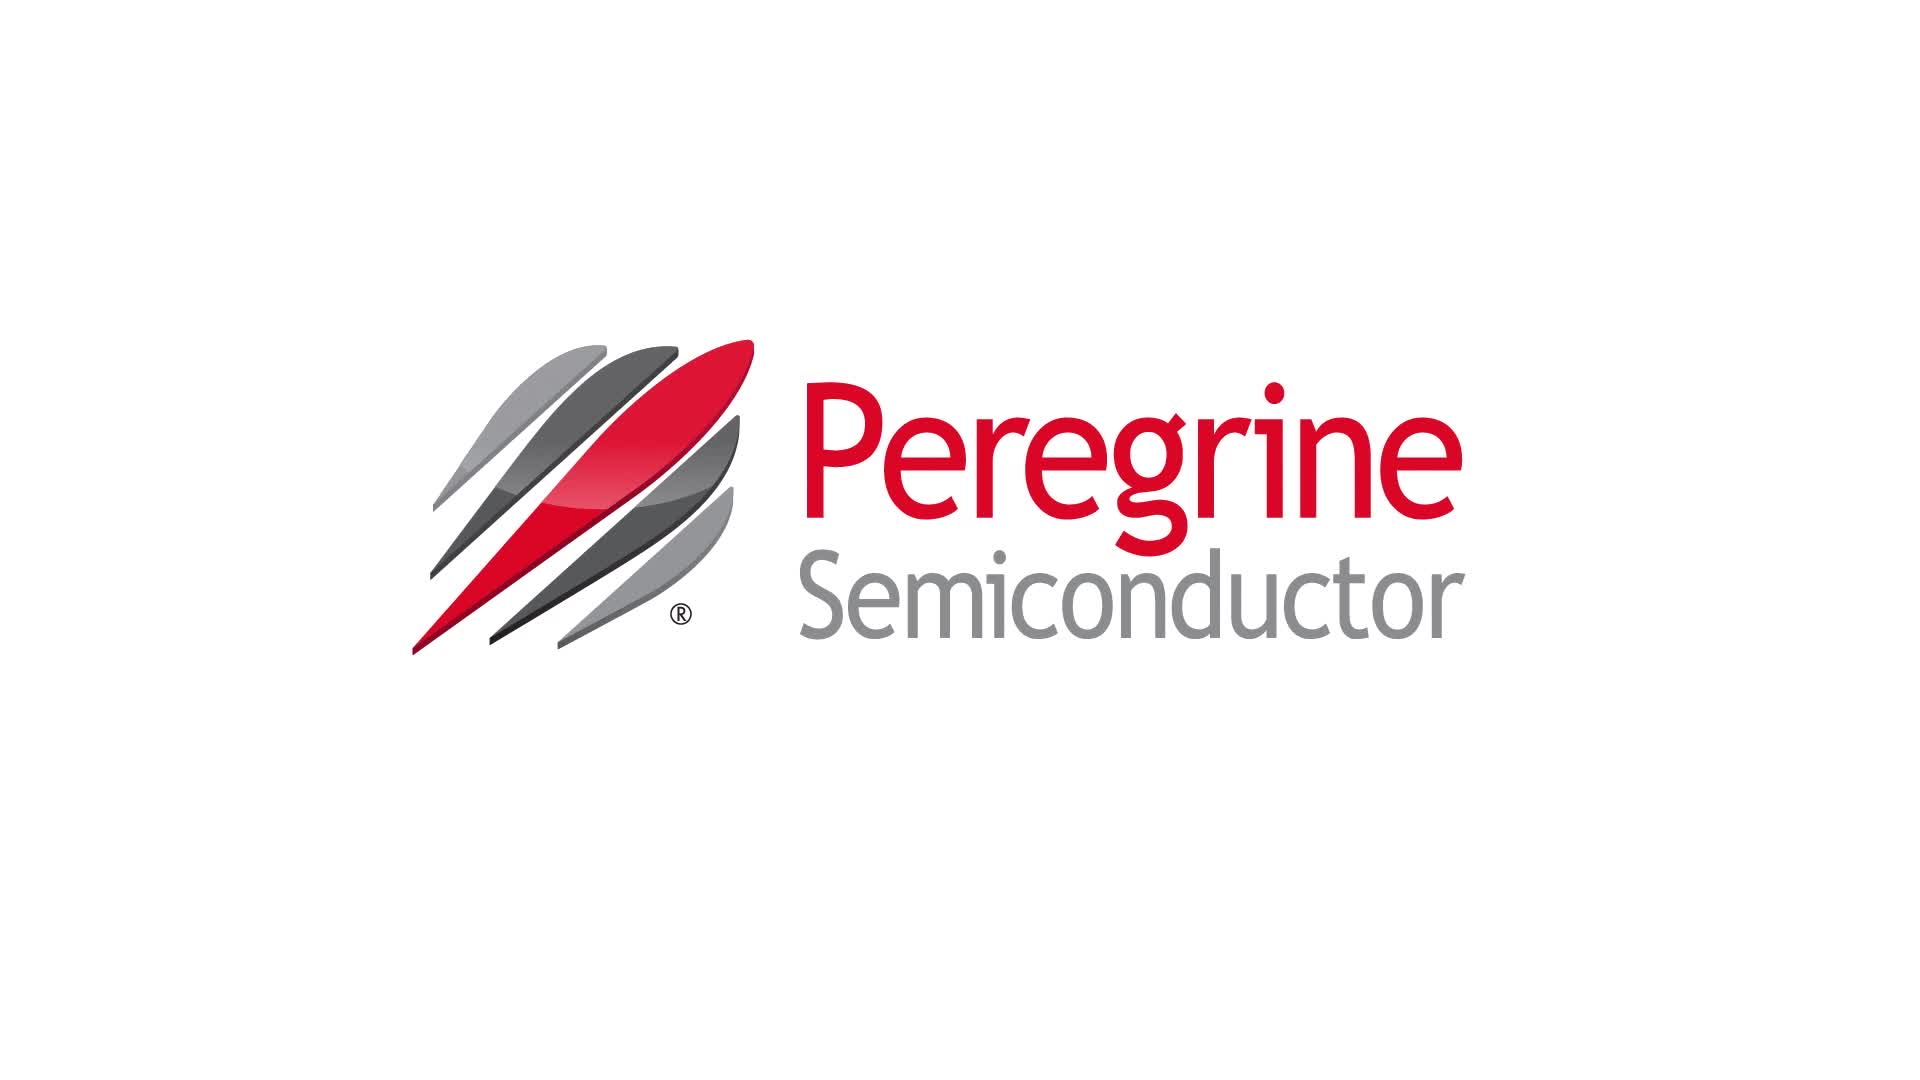 Peregrine Semiconductor's UltraCMOS® PE42723 exceeds the linearity requirements of the DOCSIS 3.1 cable industry standard and enables a dual upstream/downstream band architecture in cable customer premises equipment (CPE) devices.